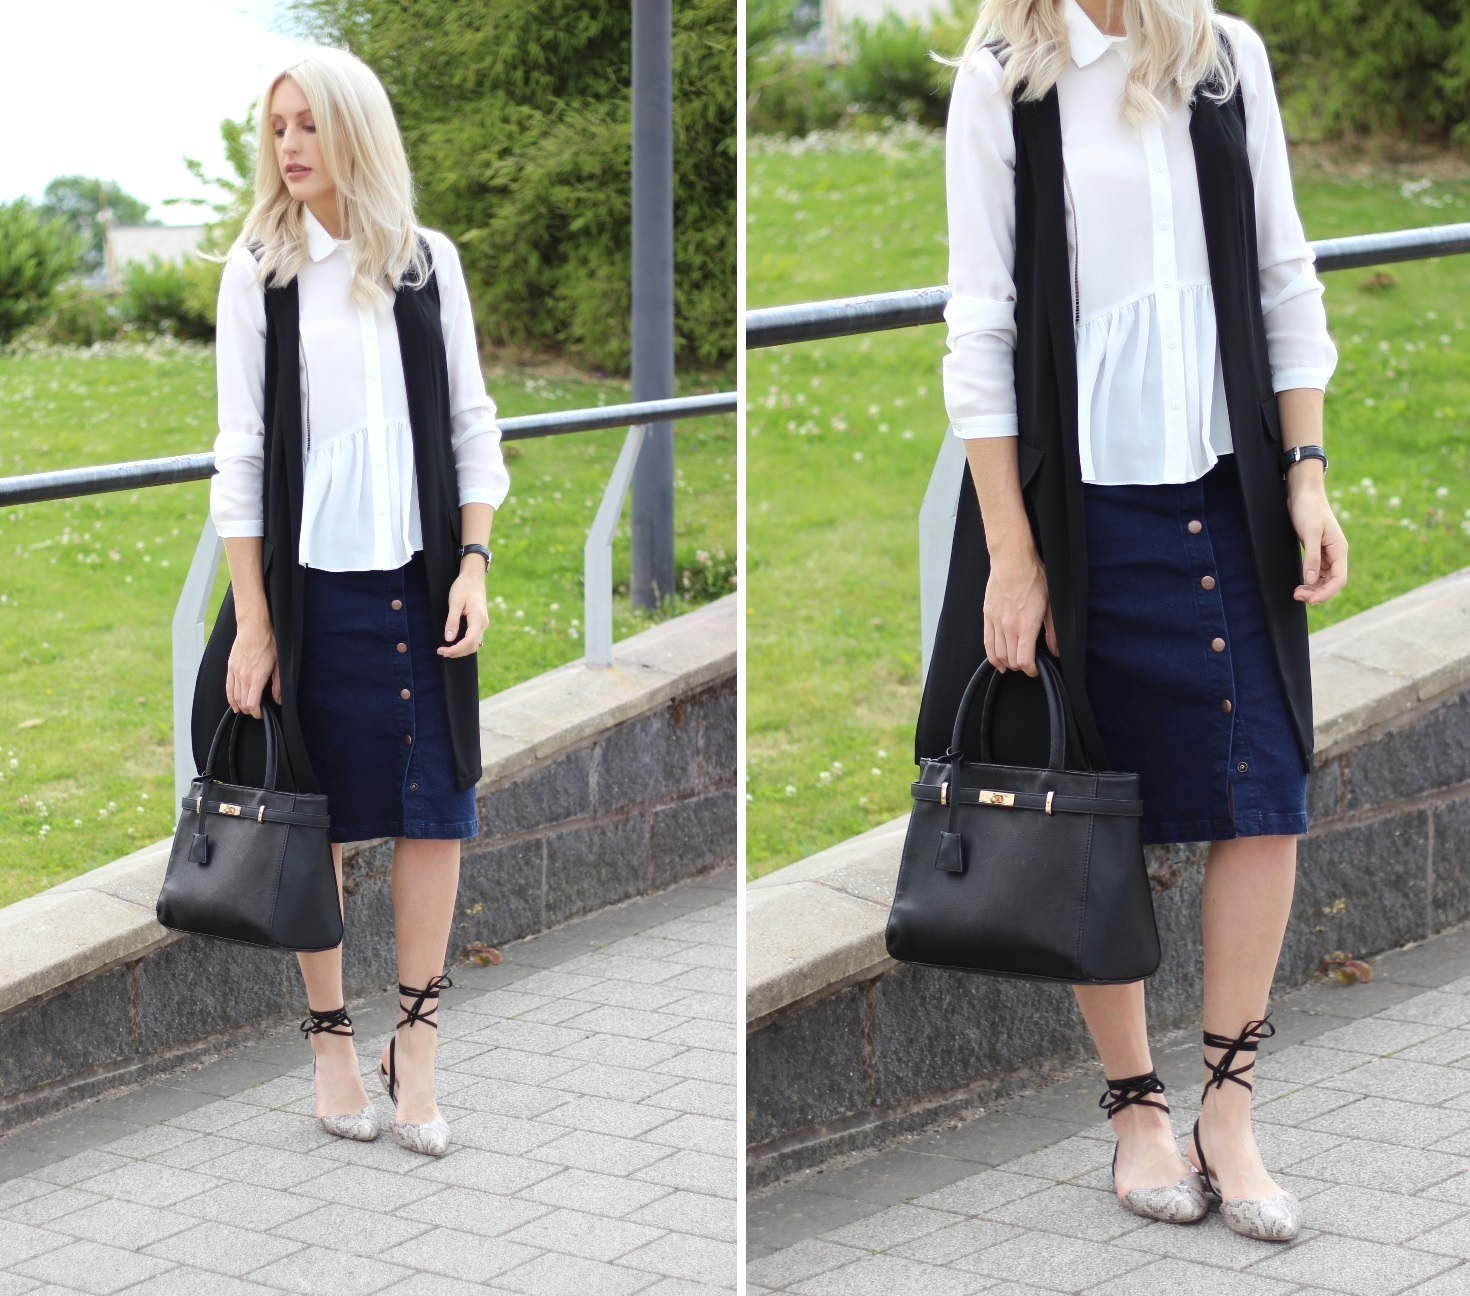 Summer Office Work Wear What To Wear To Work In The Summer Uk Fashion Blog High Street